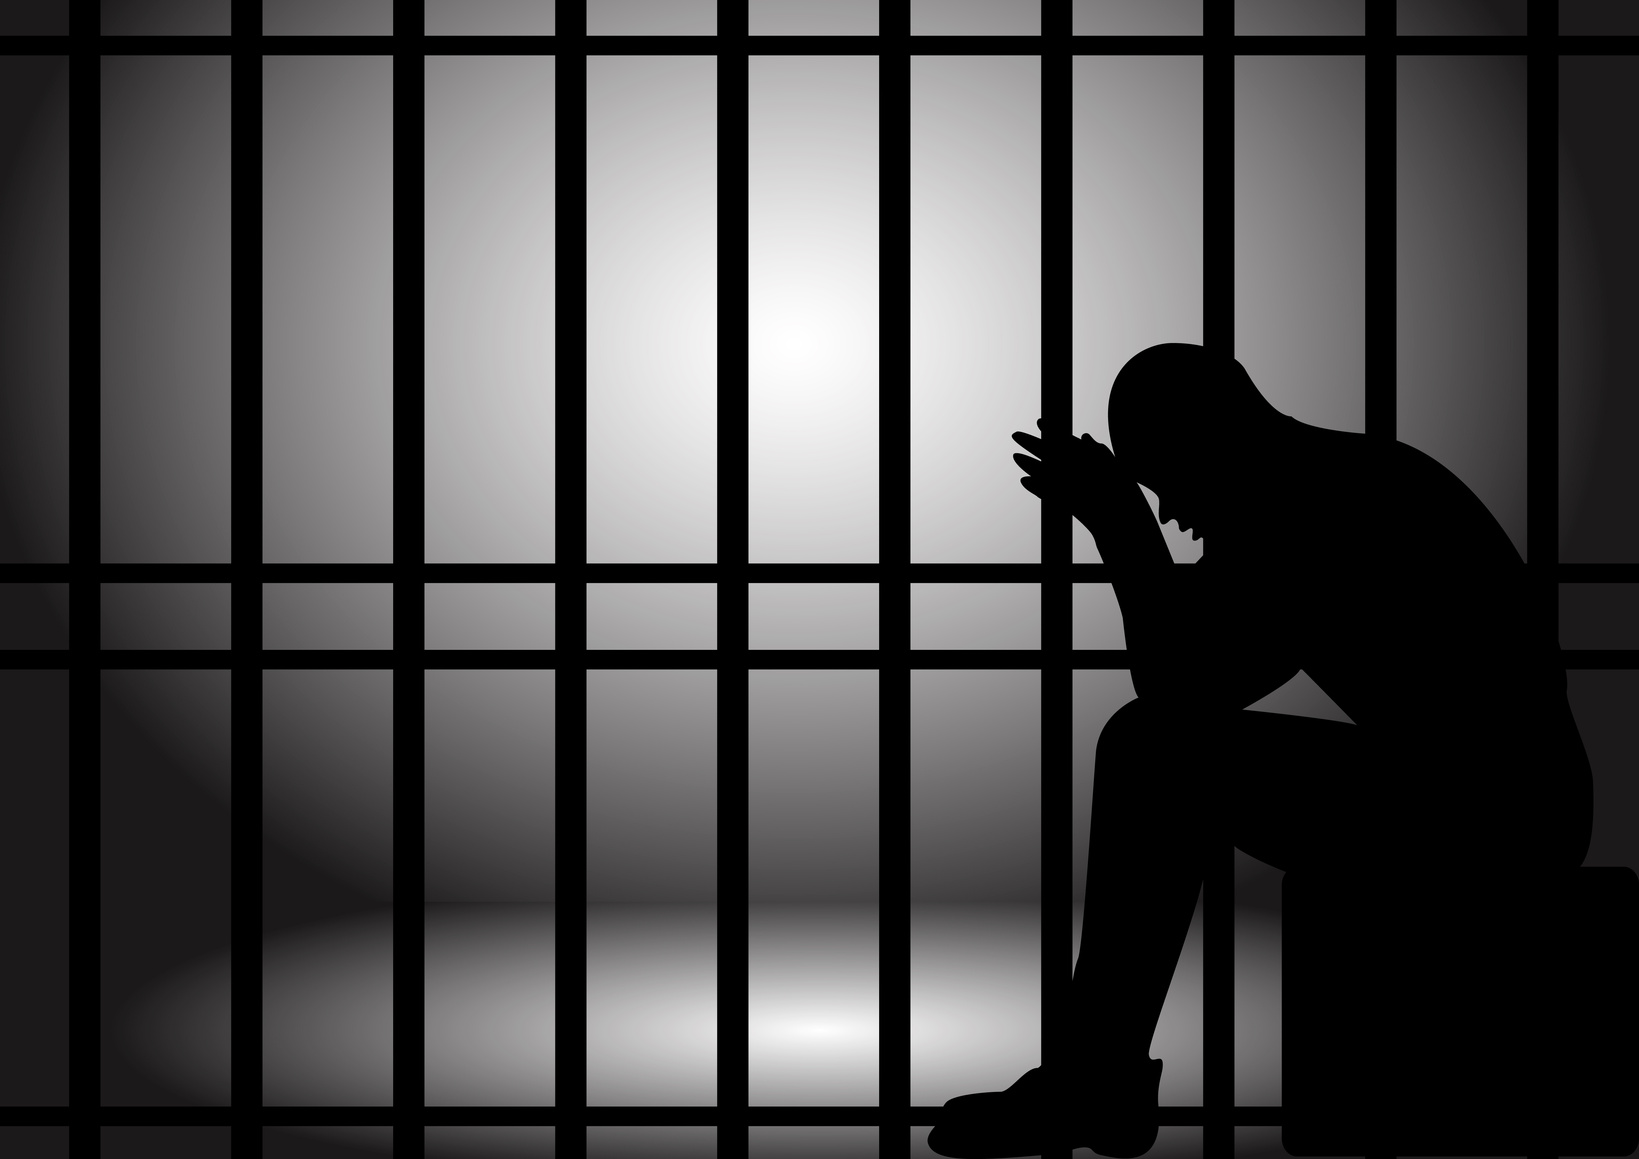 Vector illustration of a man lock up in prison